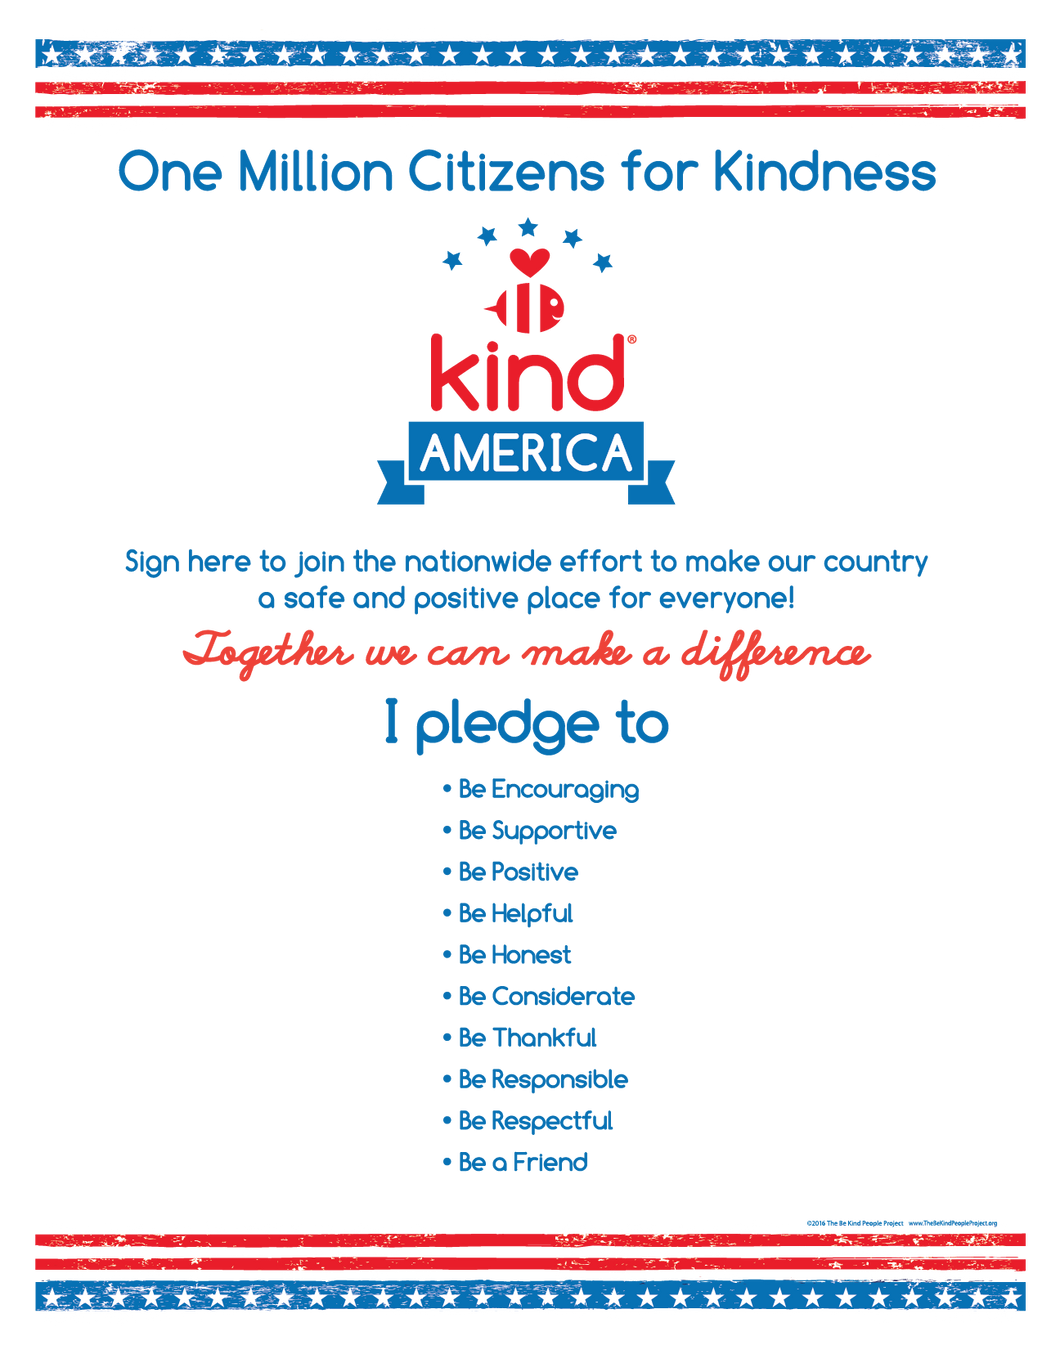 Be Kind American Citizen Poster ($3.50)